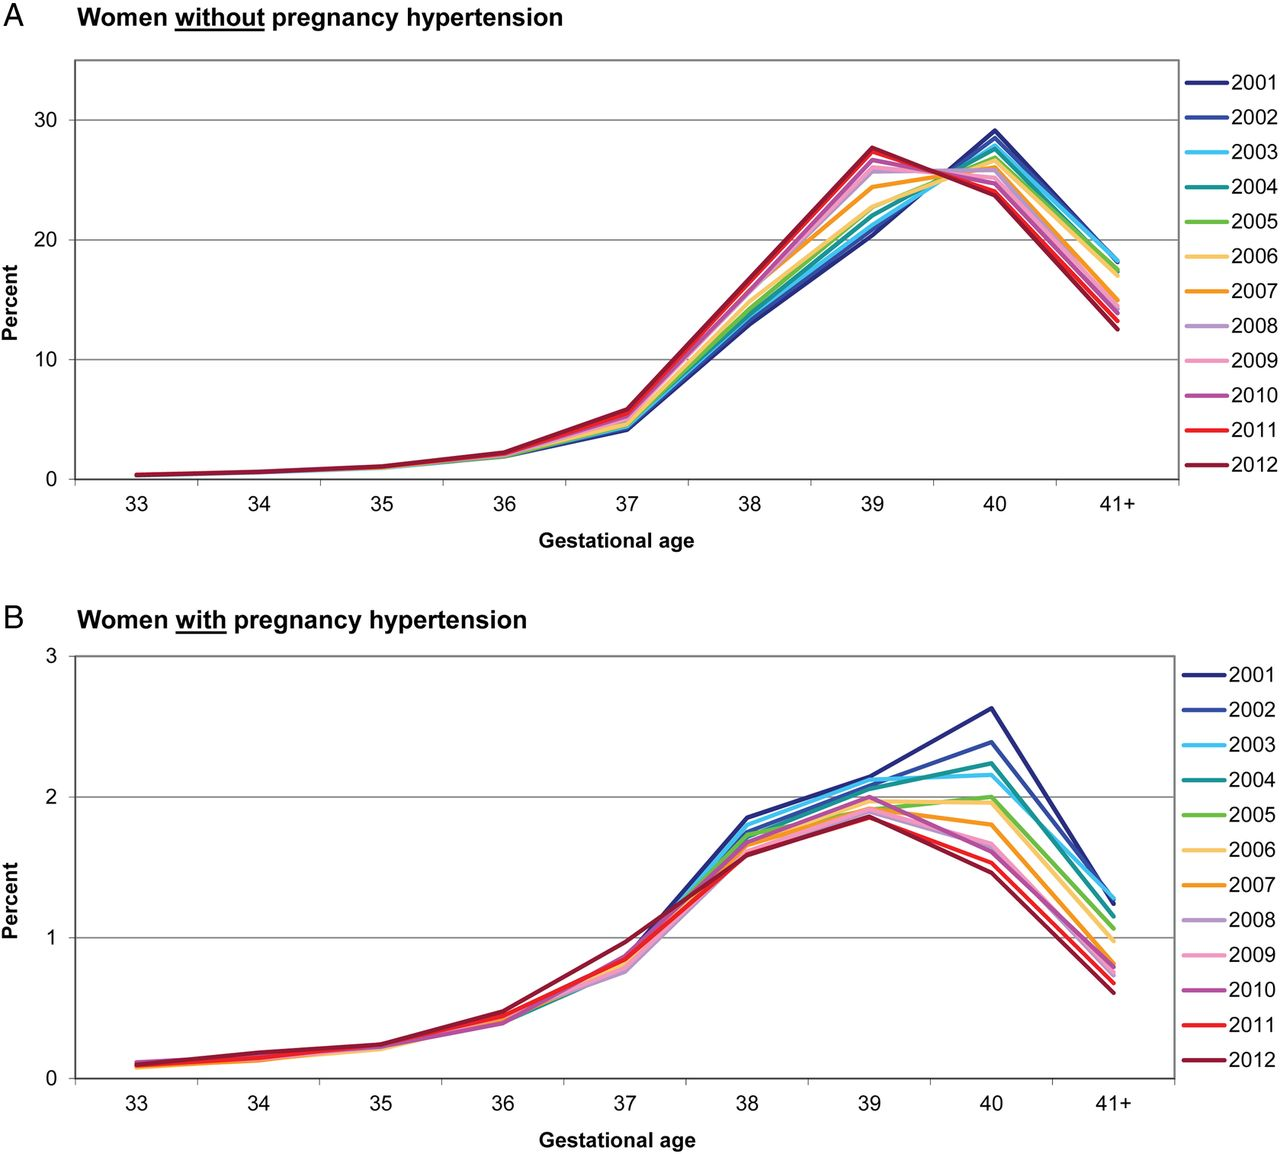 Increased Planned Delivery Contributes To Declining Rates Of Pregnancy Hypertension In Australia